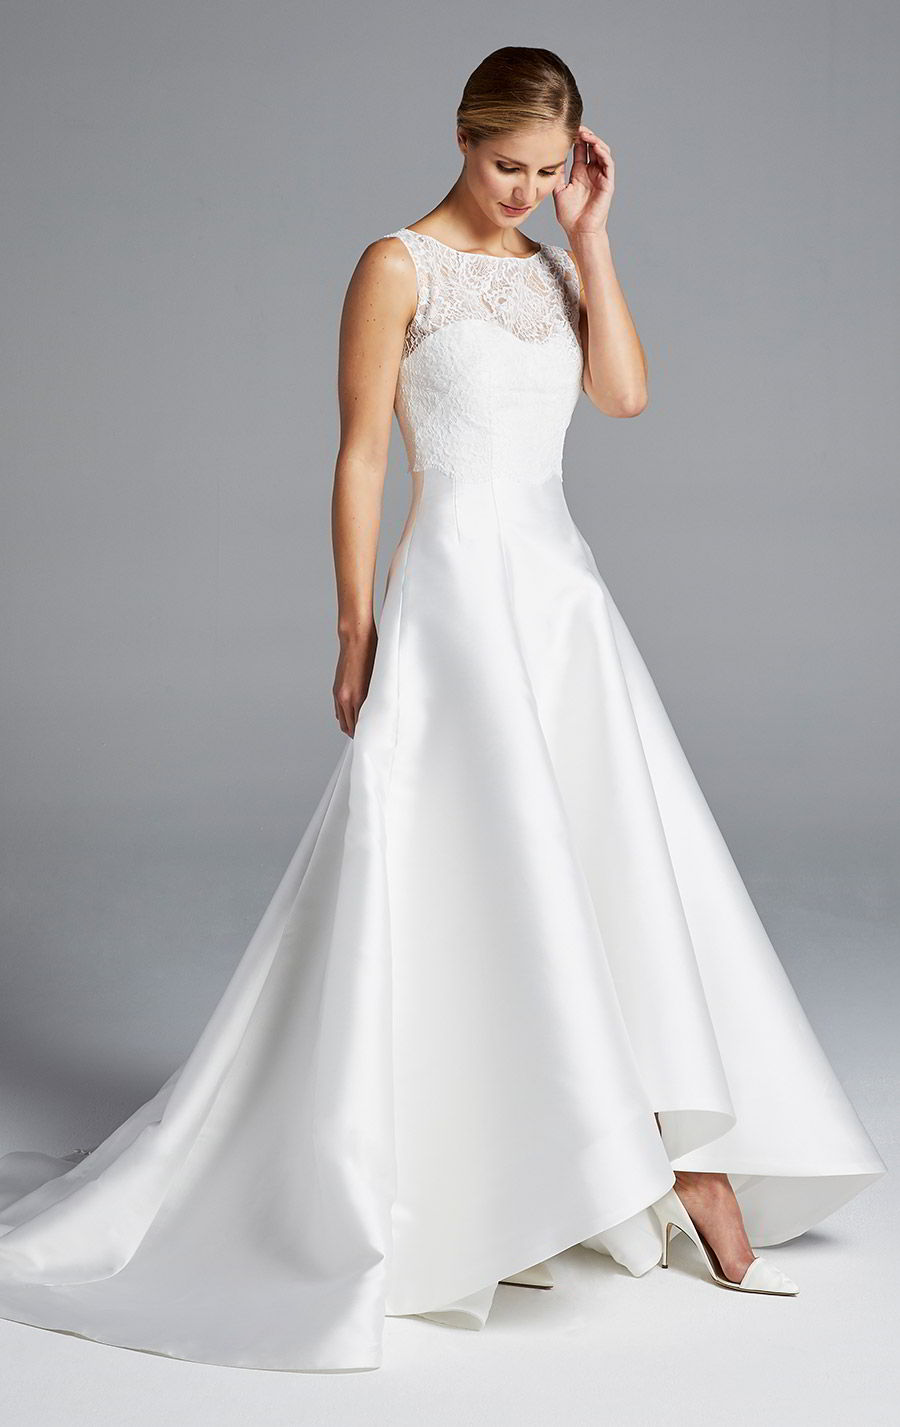 anne barge bridal spring 2019 strapless sweetheart clean a line high low wedding dress sleeveless lace top bateau neck (mindy) mv modern chic